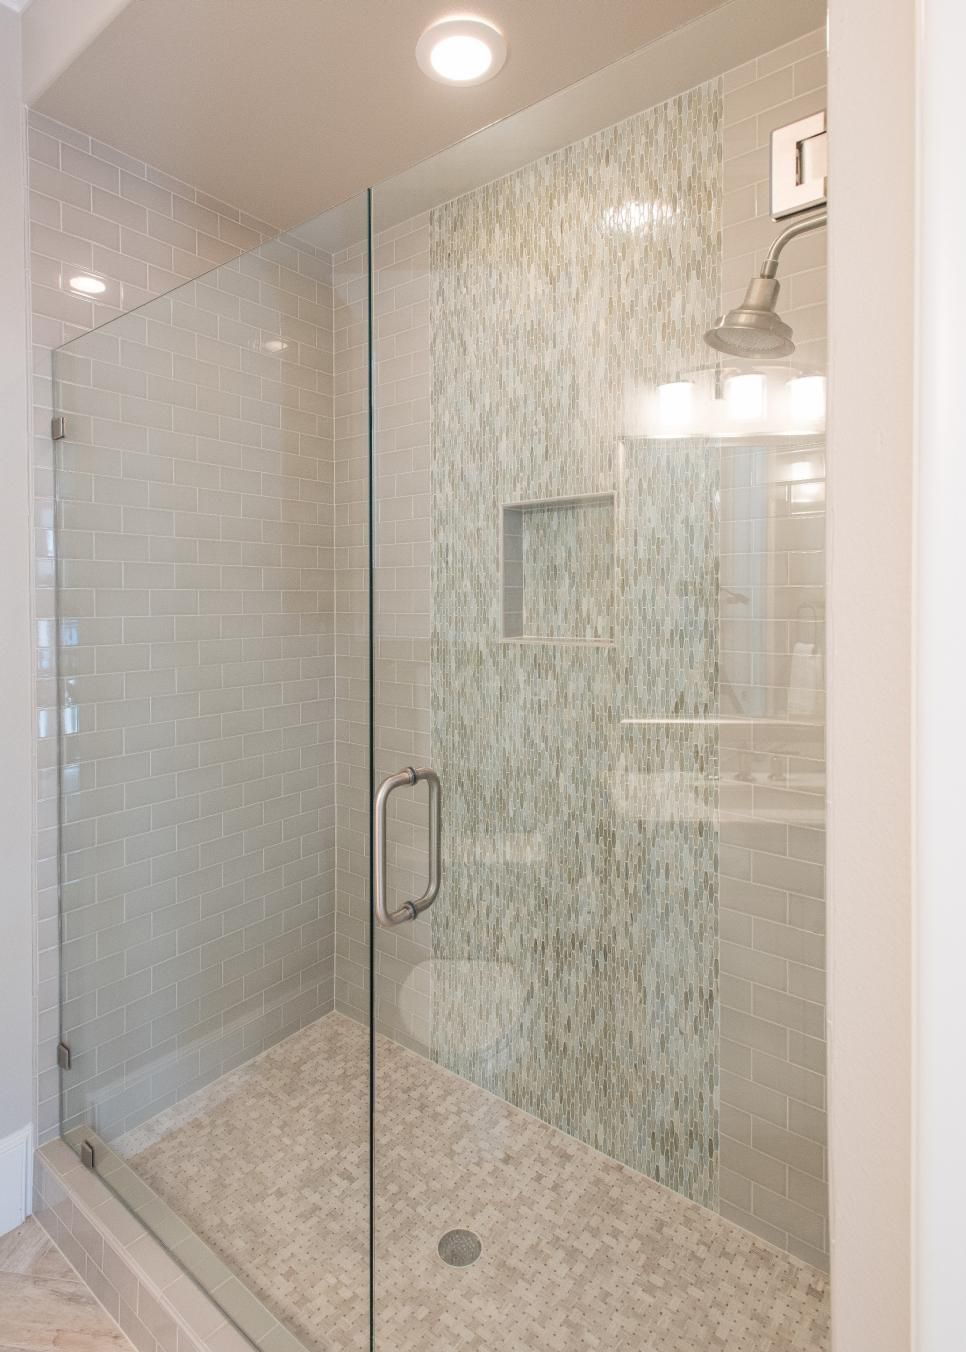 This Frameless Glass Door Shower Has An Effortless Contemporary